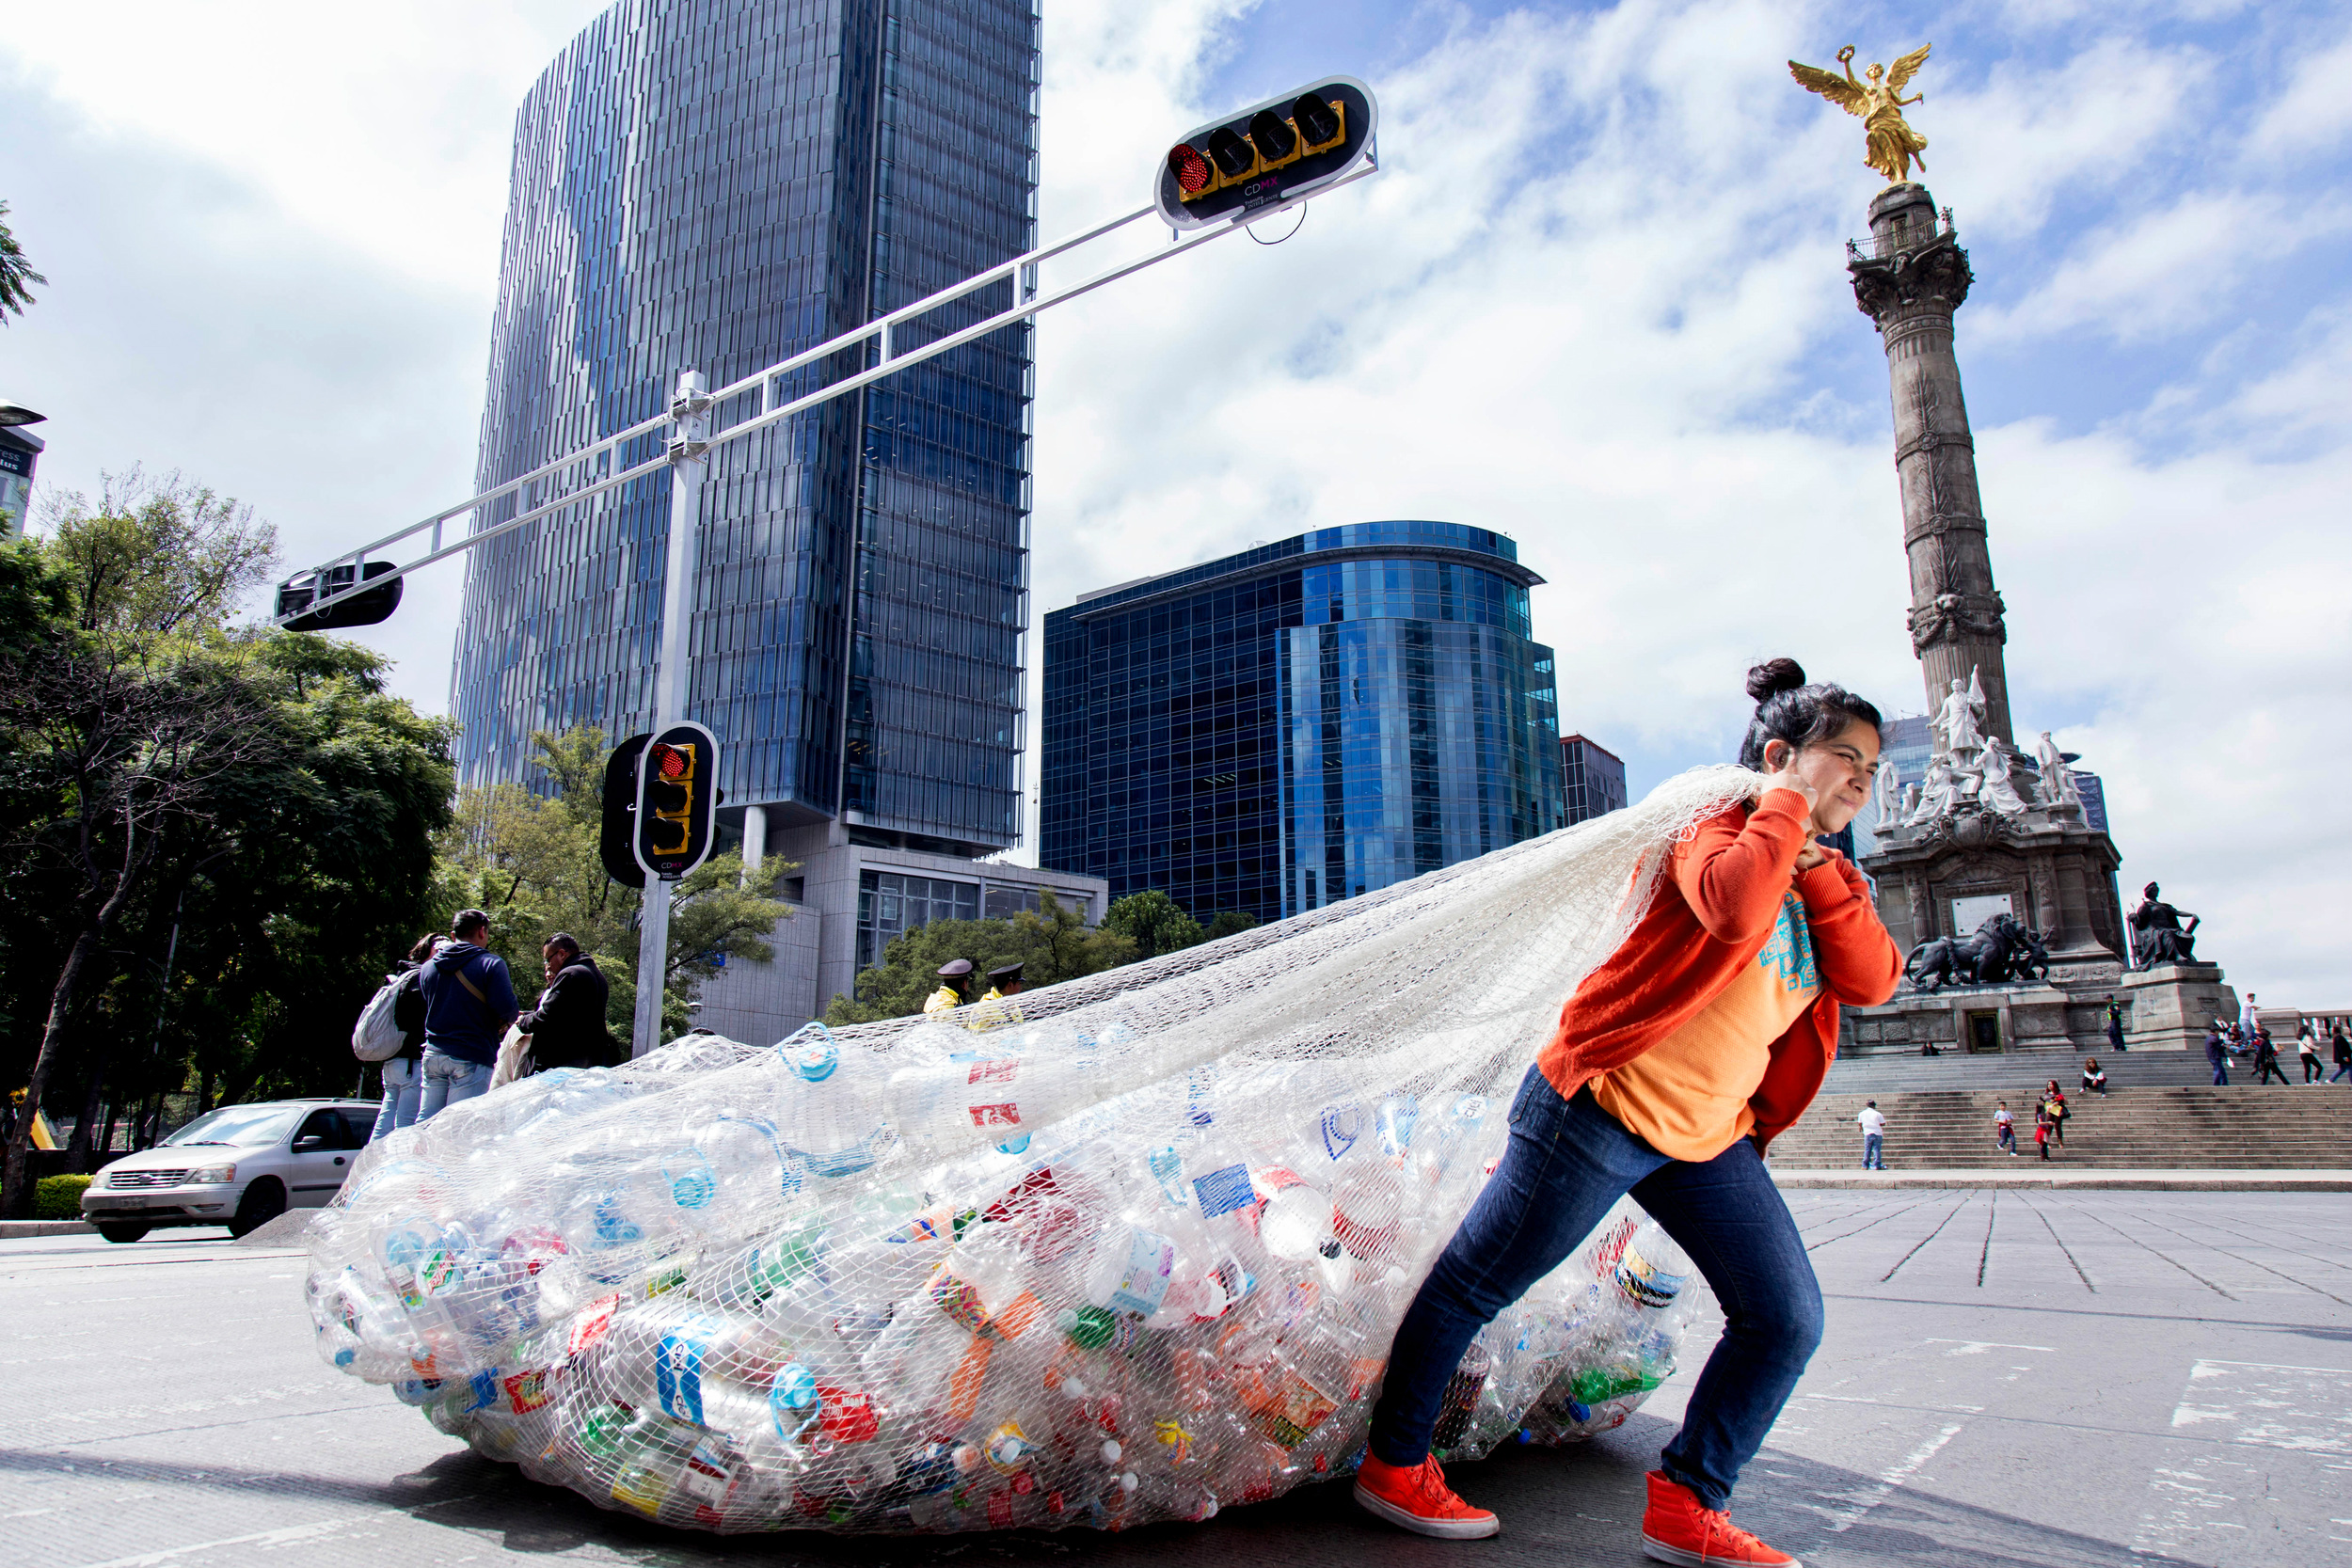 Plastic Consumption in Mexico. © Argelia Zacatzi / Greenpeace